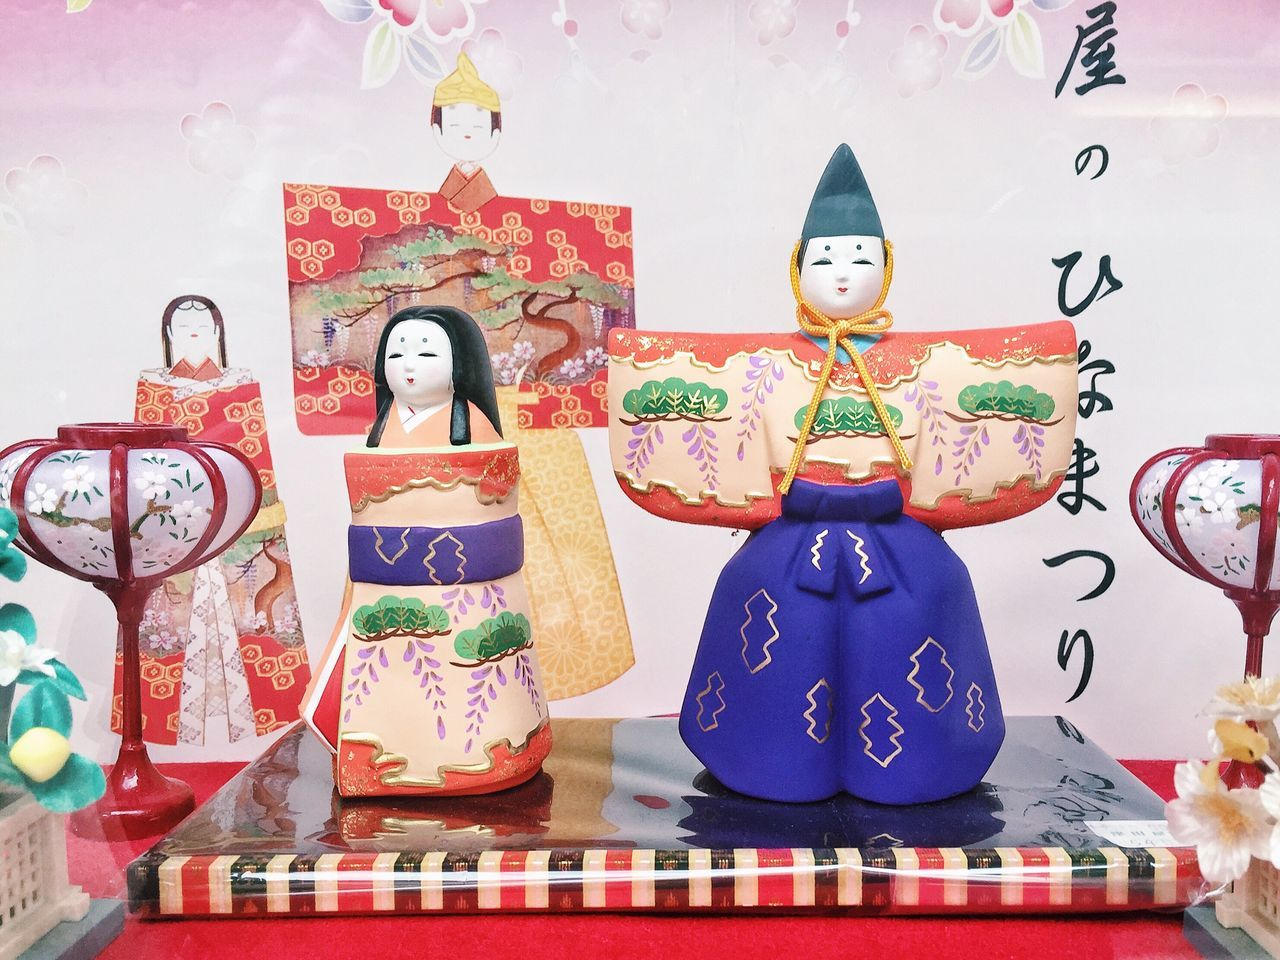 Before march ends..... a bit of Japanese tradition I miss. Human Representation Figurine  Sculpture Cultures Tradition Cultural Event Culture And Tradition Japanese Traditional Events Japanese Festivities Hinamatsuri ひな祭り Japanese Dolls Dolls Girls Day